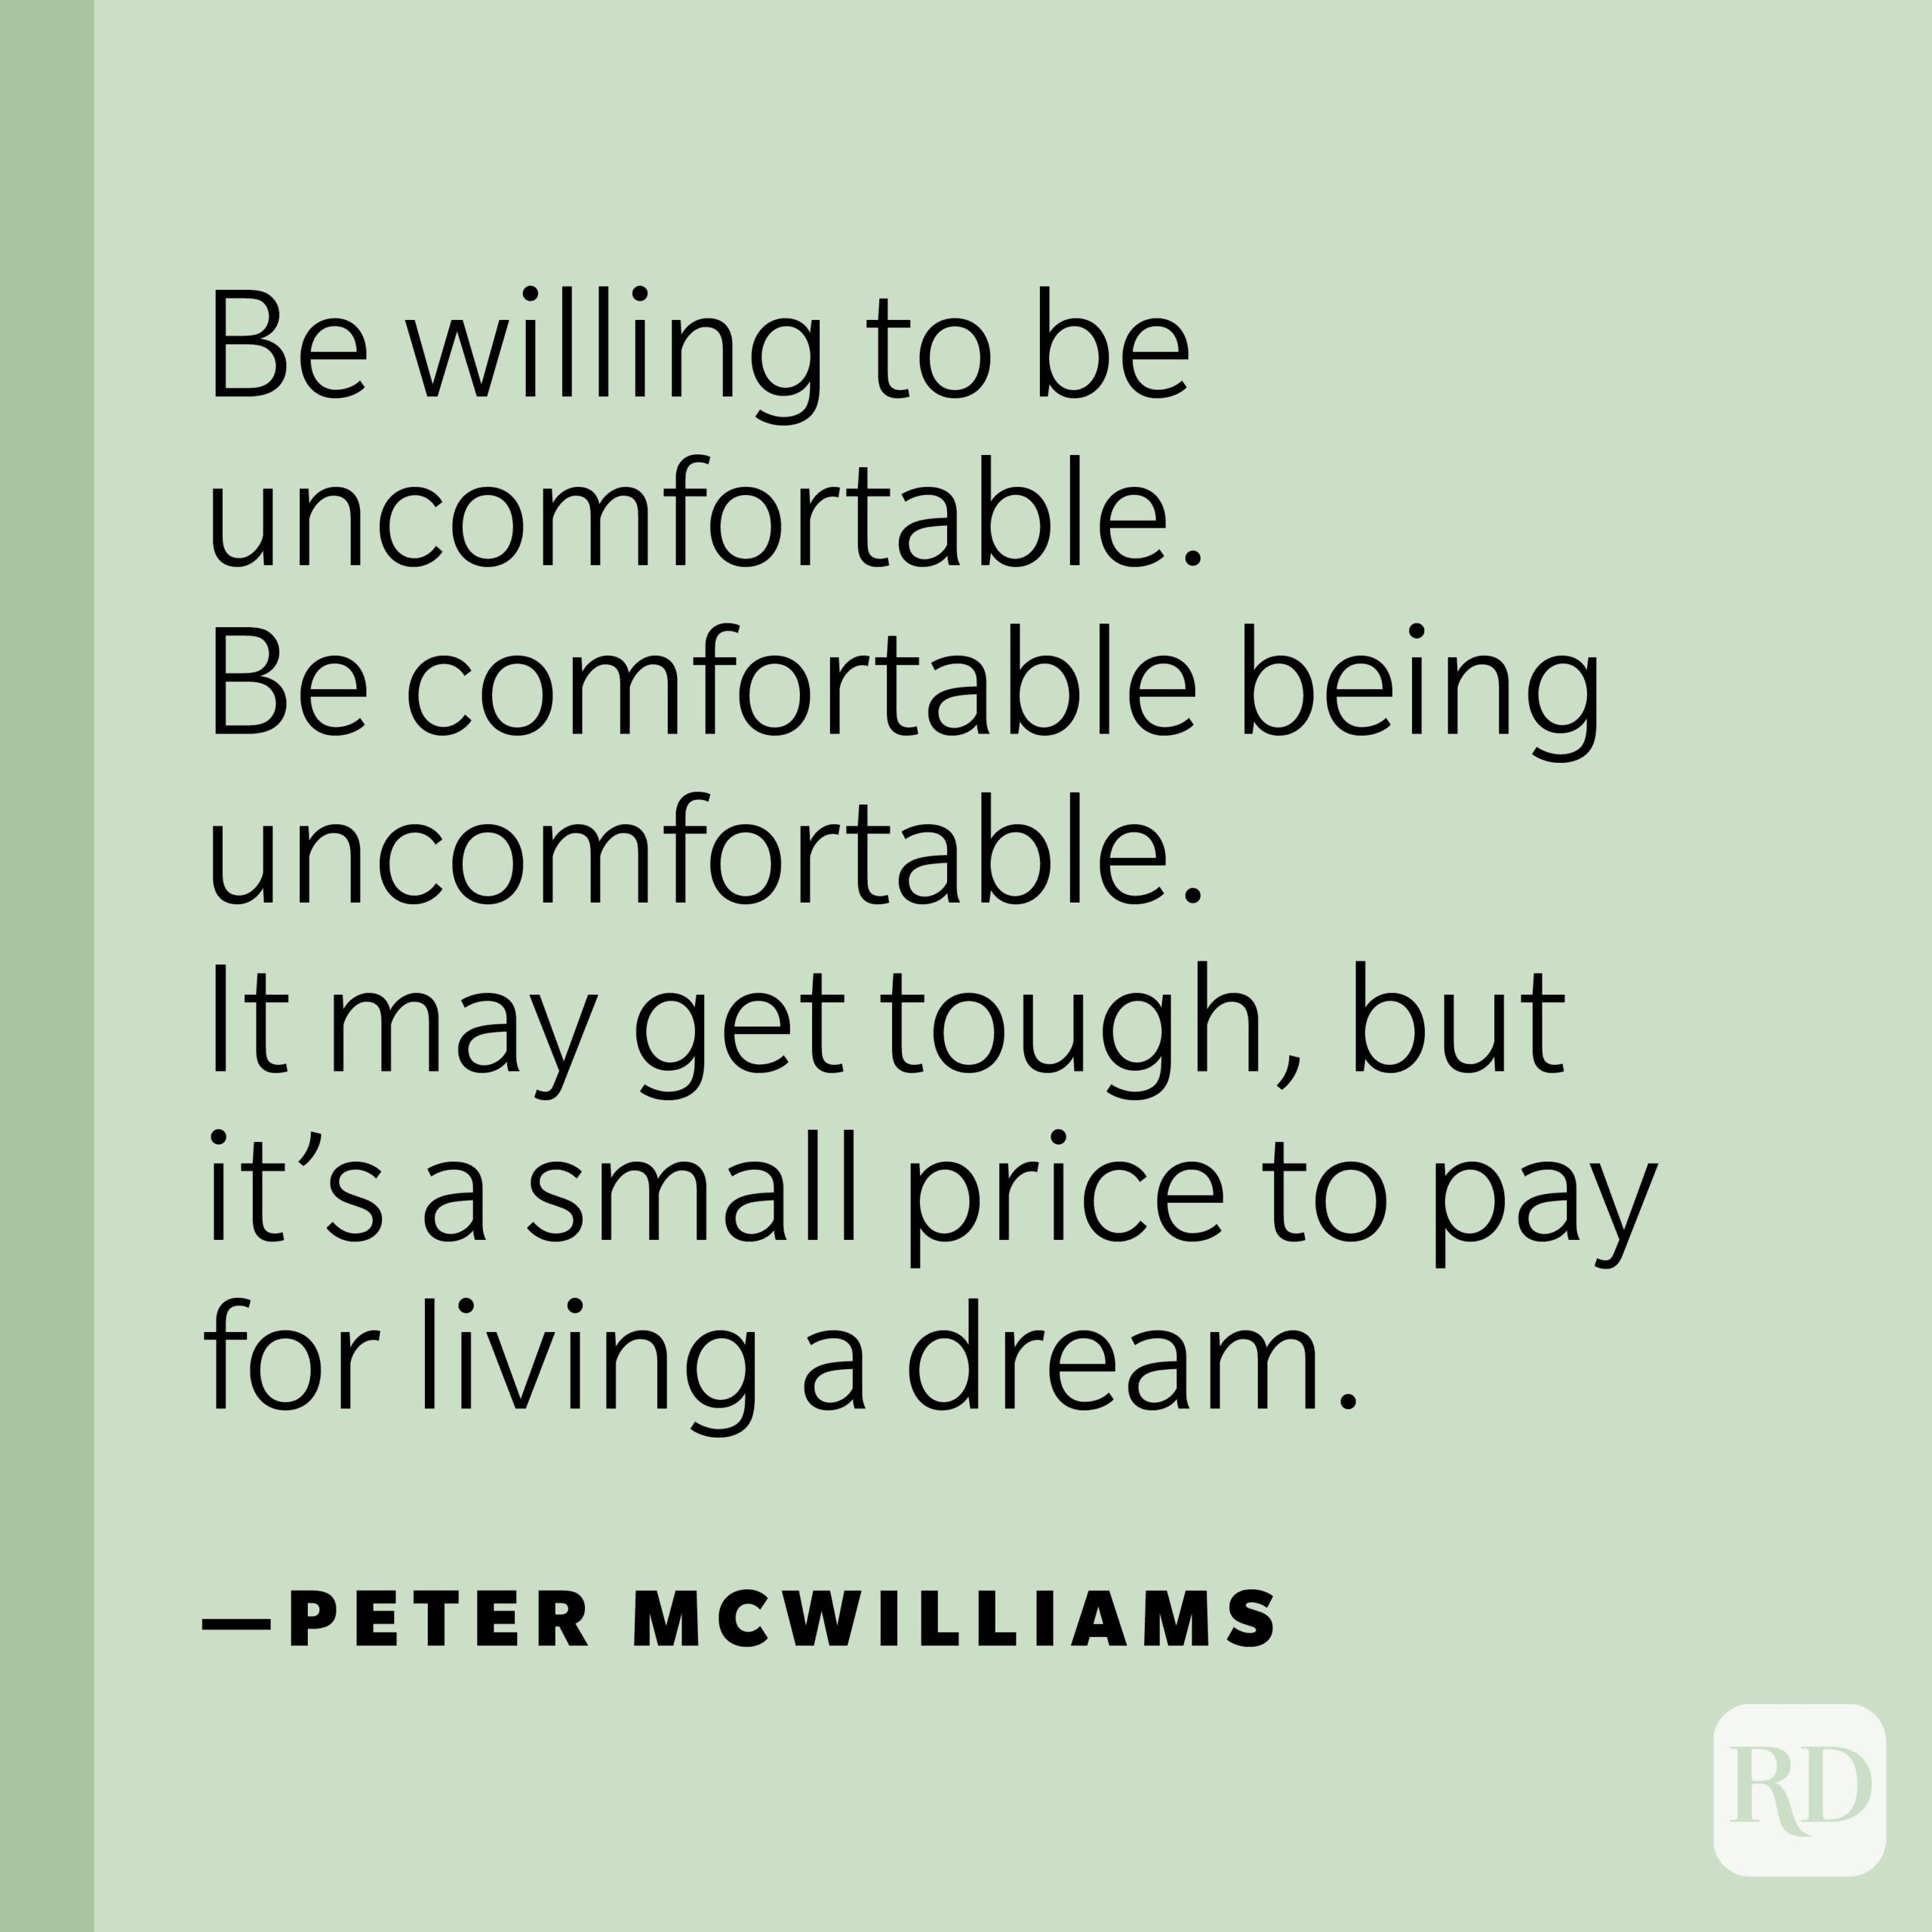 """""""Be willing to be uncomfortable. Be comfortable being uncomfortable. It may get tough, but it's a small price to pay for living a dream."""" —Peter McWilliams."""